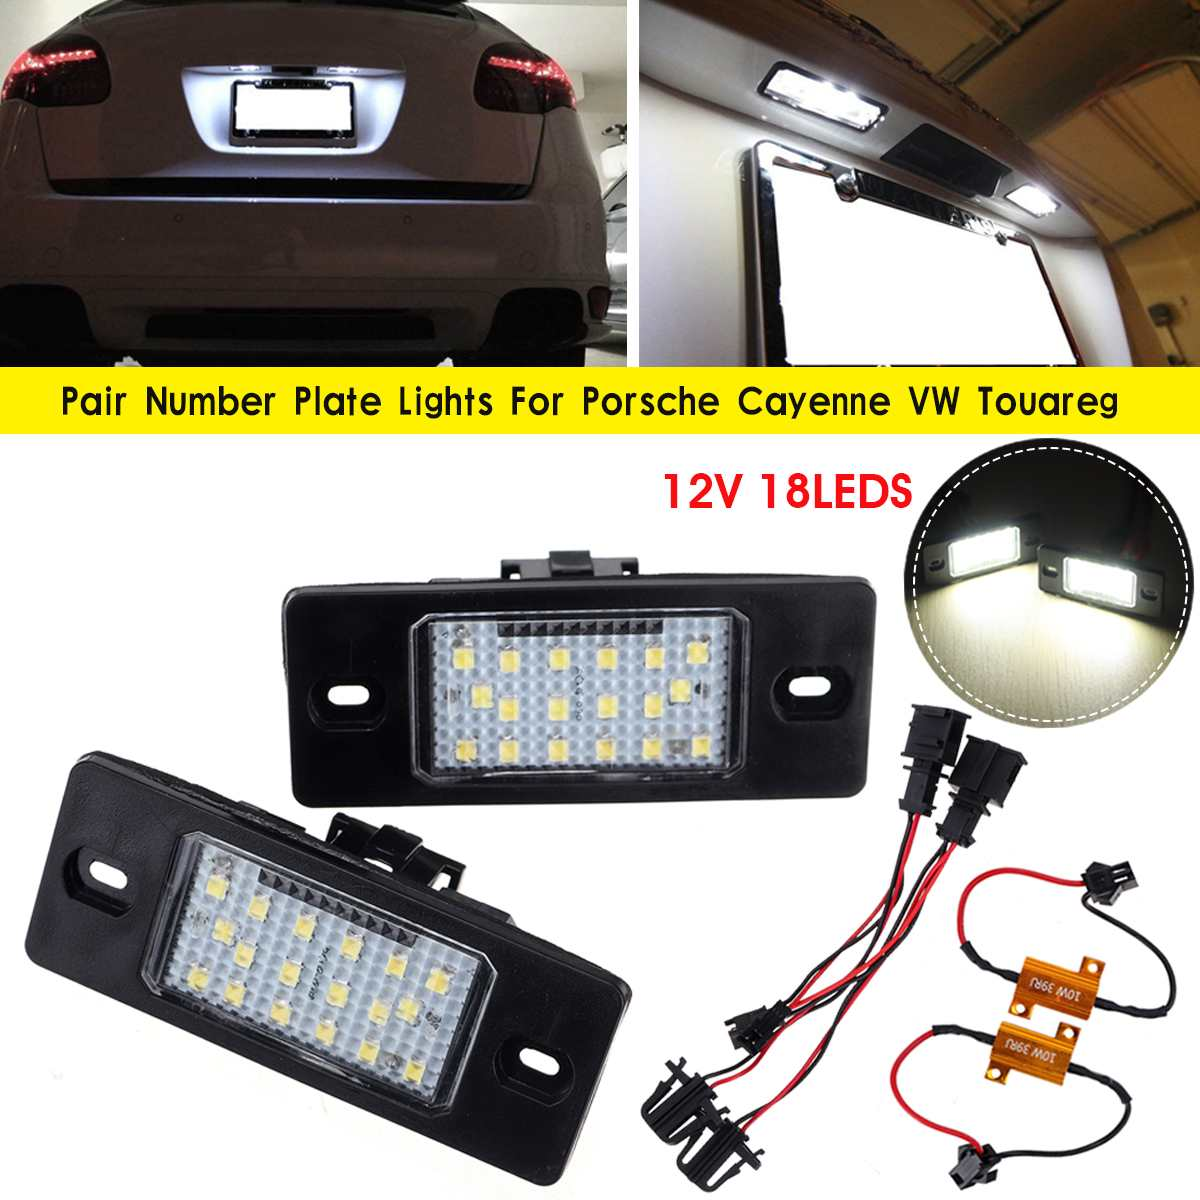 FOR PORSCHE CAYENNE 2002-2010 18 LED NUMBER PLATE LIGHT LAMP PAIR